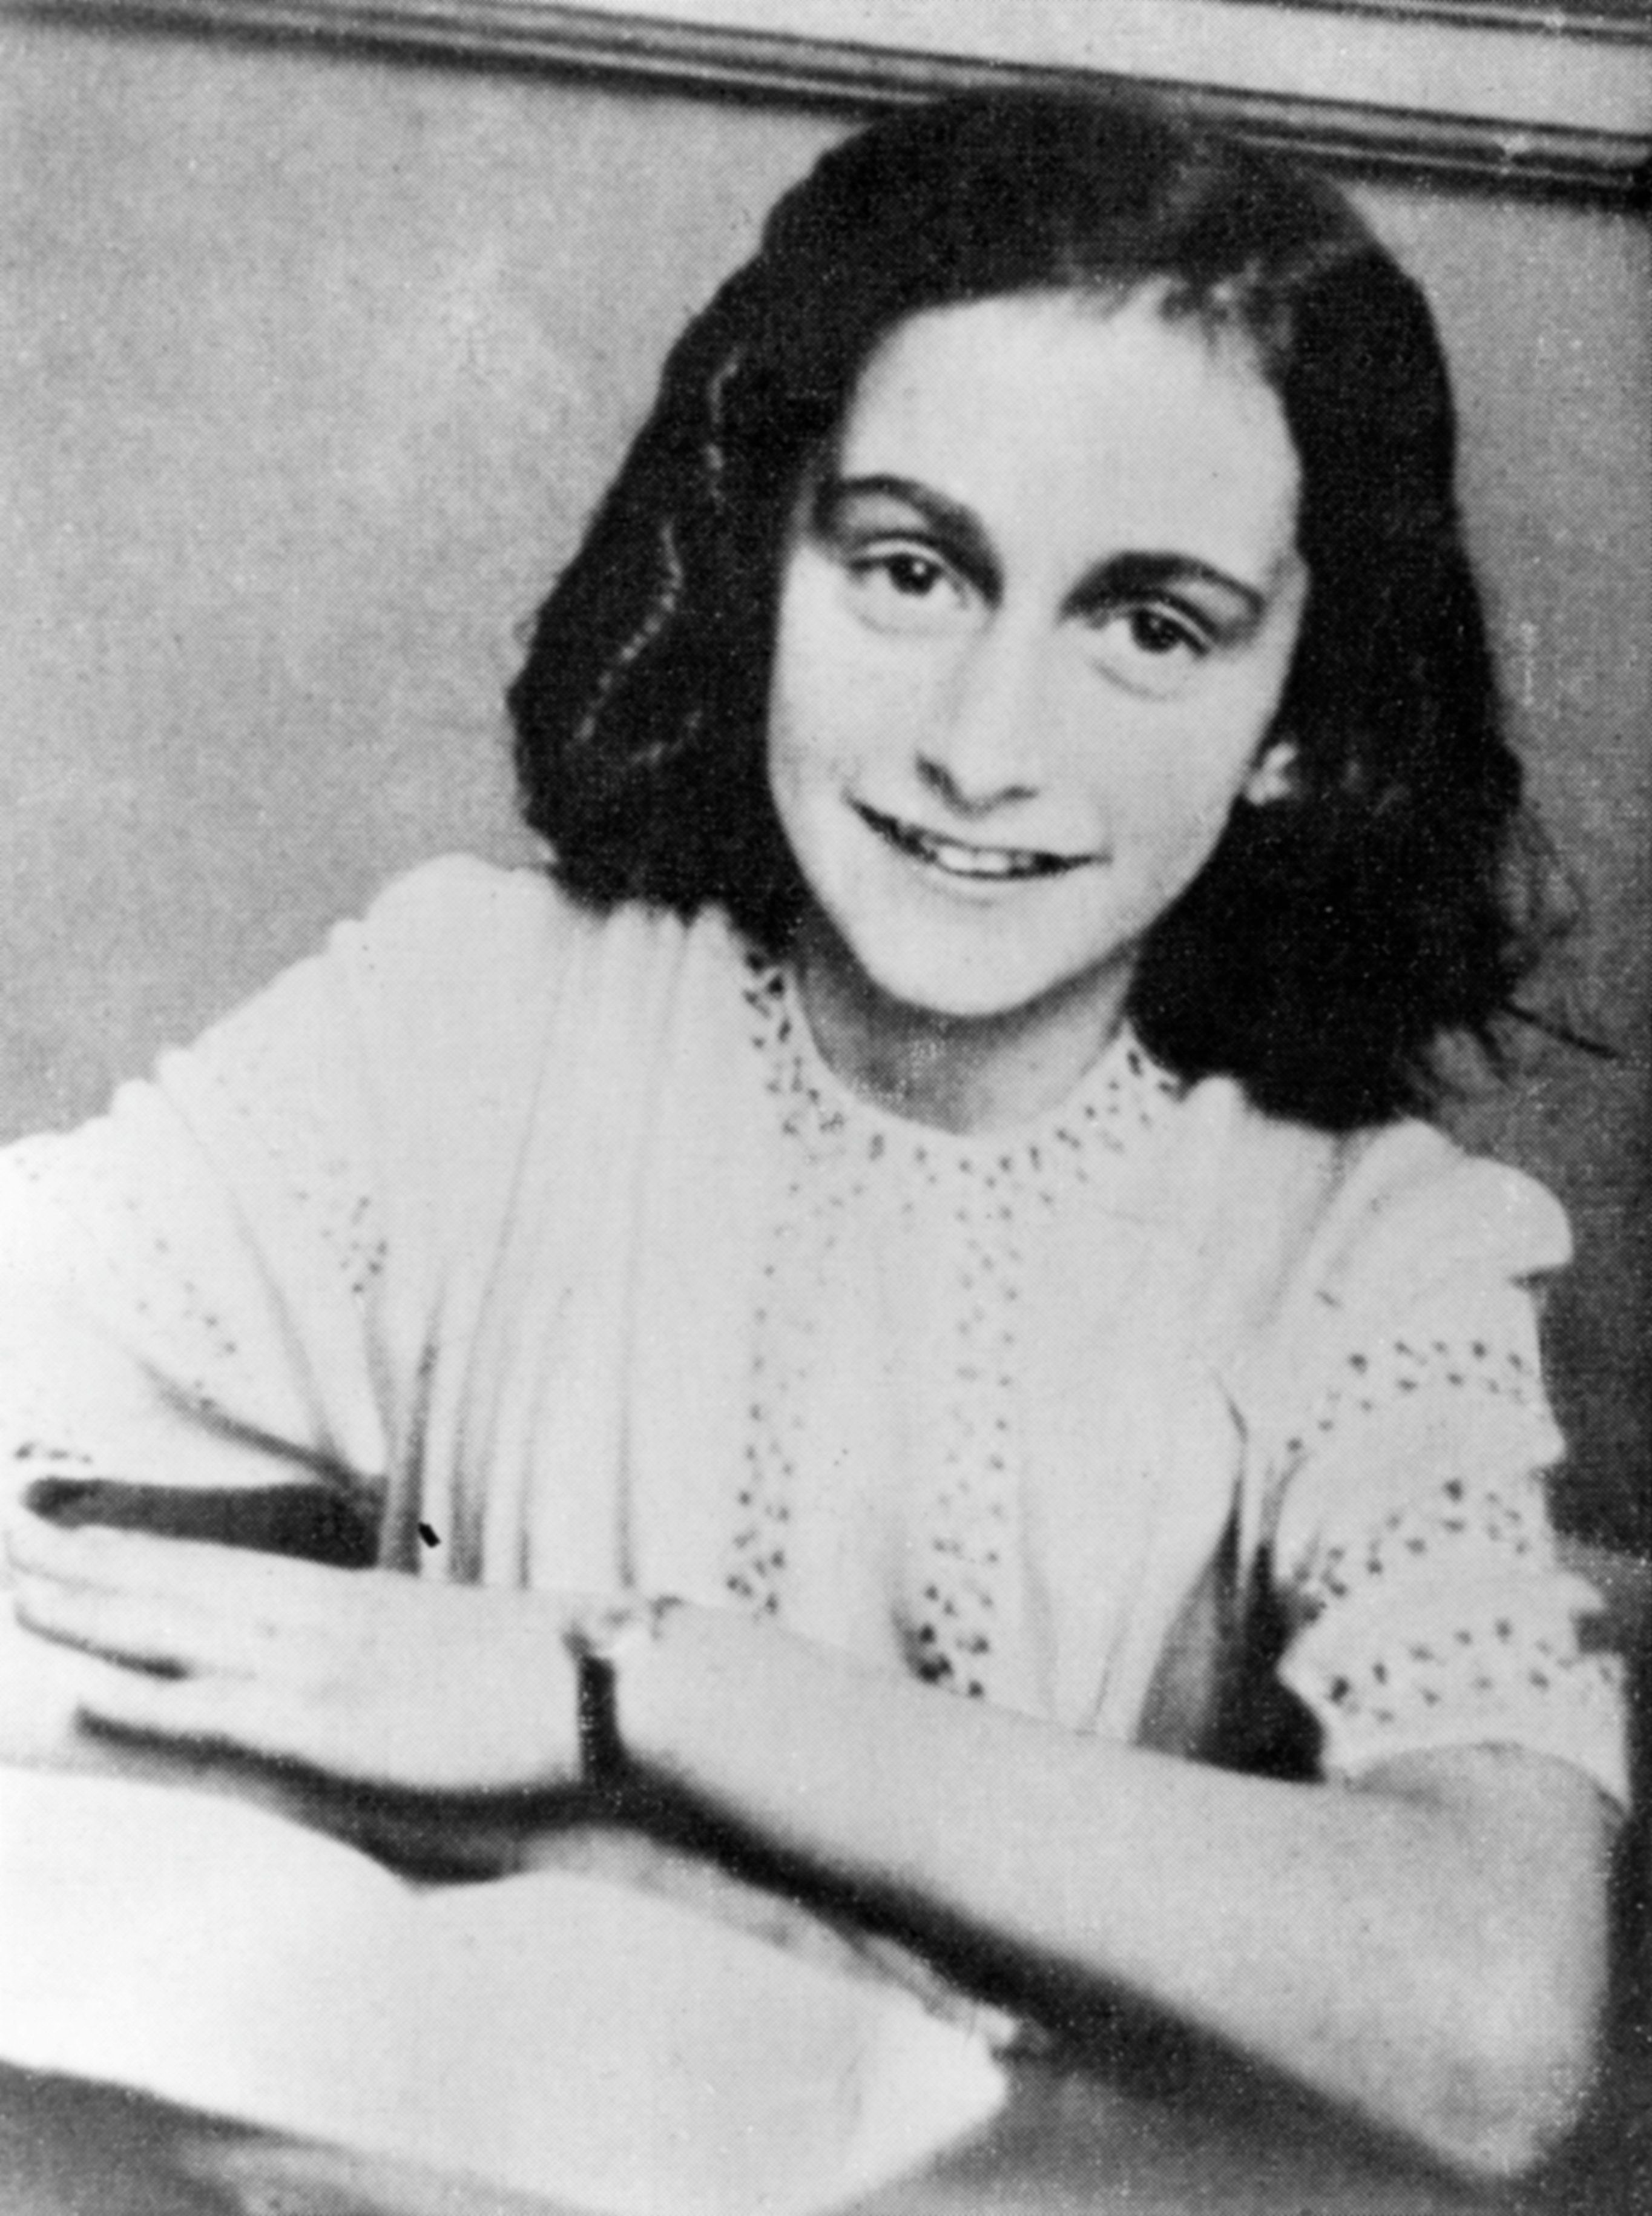 (Eingeschränkte Rechte für bestimmte redaktionelle Kunden in Deutschland. Limited rights for specific editorial clients in Germany.) ' Anne Frank, German Jew who emigrated with her family to the Netherlands during the Nazi period. Separated from the rest of her family, she and her sister died of typhoid fever in the concentration camp Bergen-Belsen - no year (Photo by ullstein bild/ullstein bild via Getty Images)